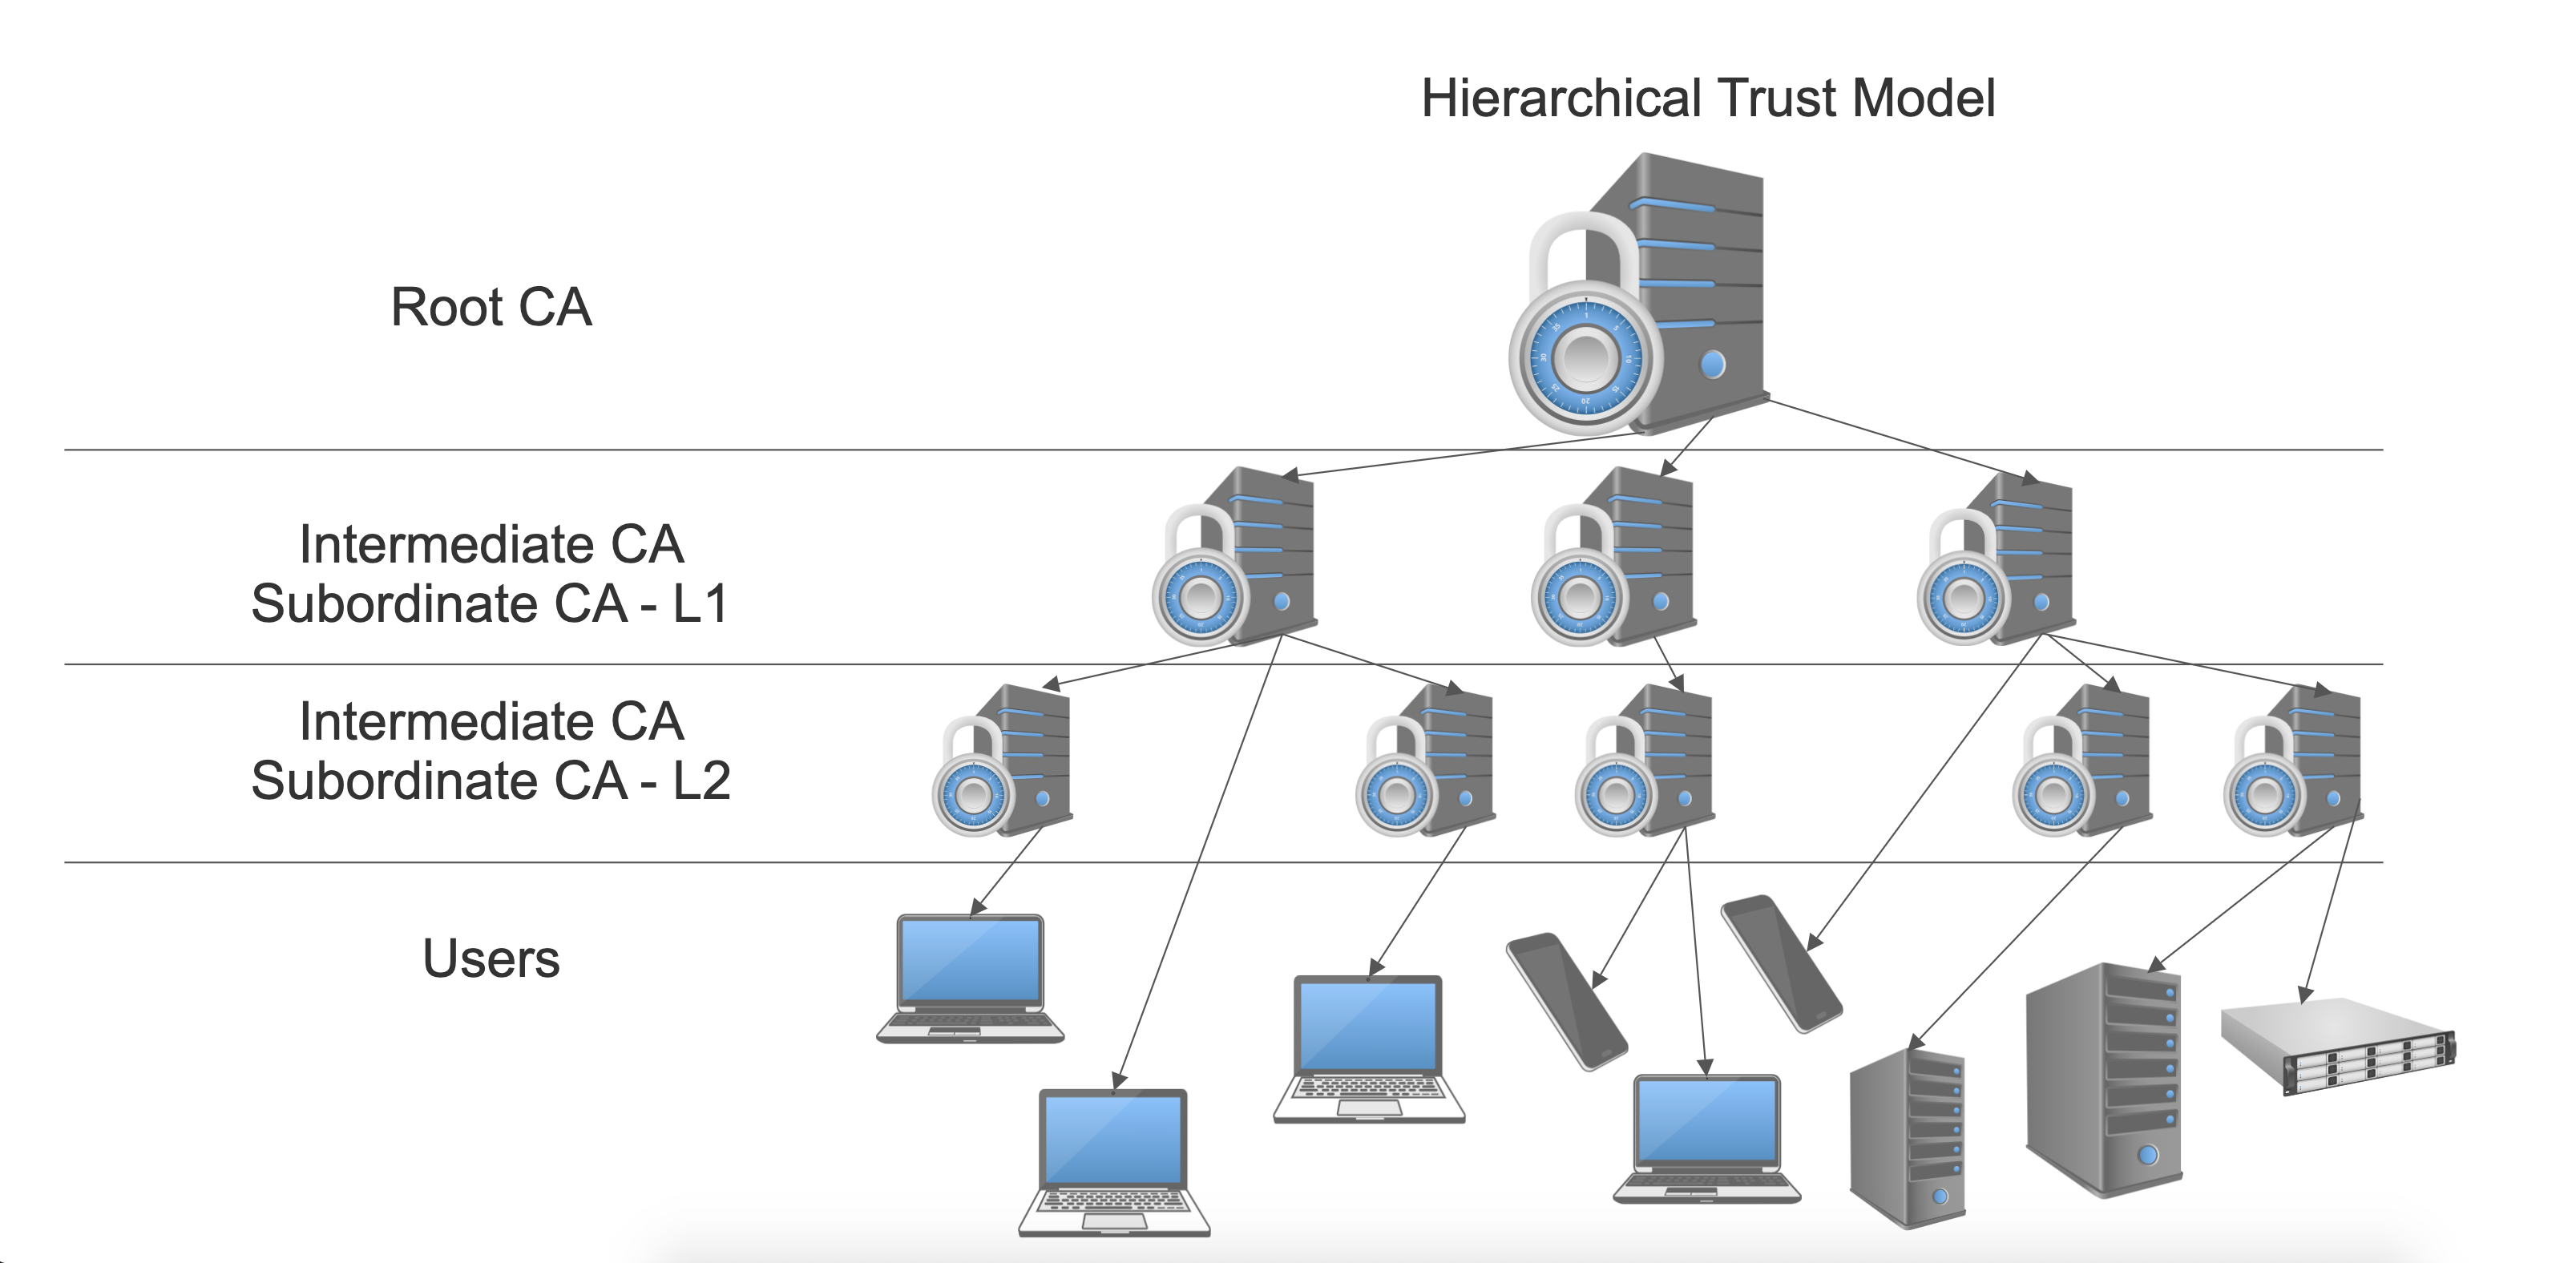 Hierarchical Trust Model